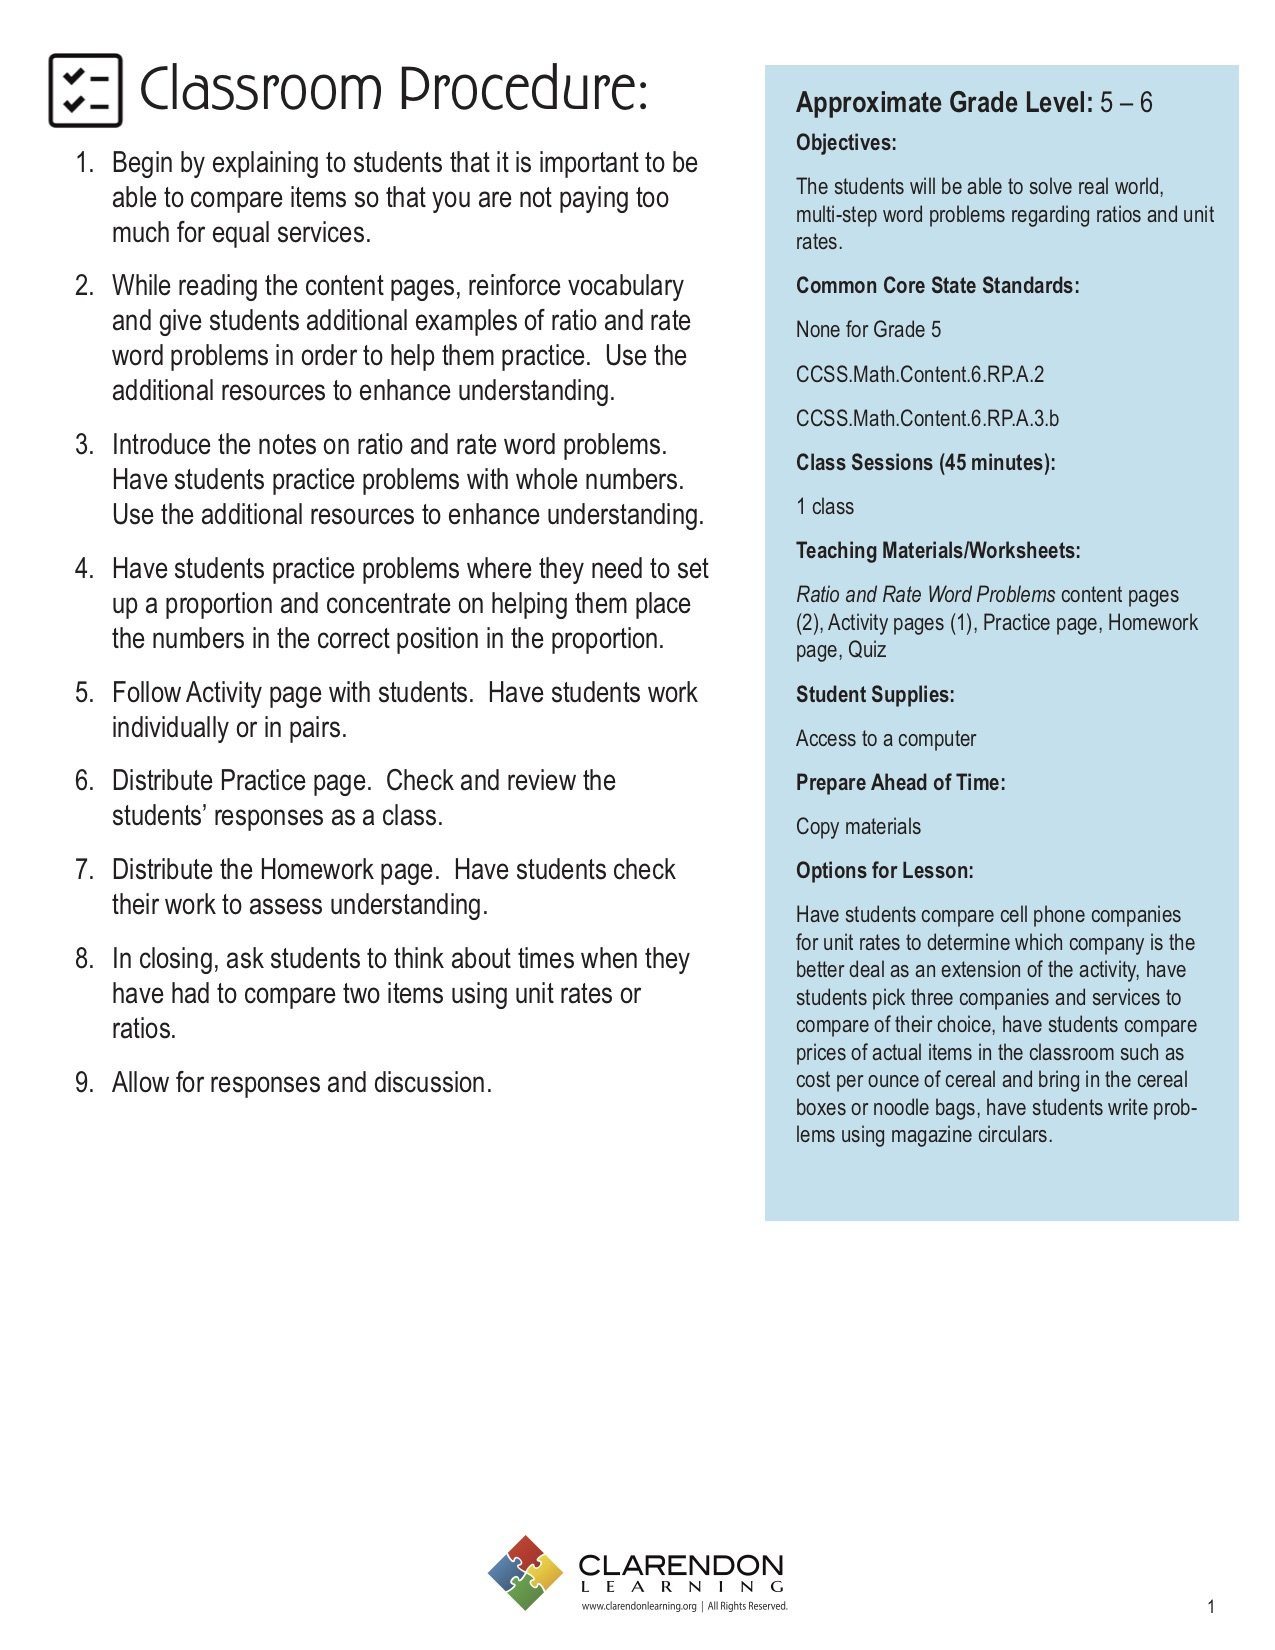 Unit Rate Word Problems Worksheet Ratio and Rate Word Problems